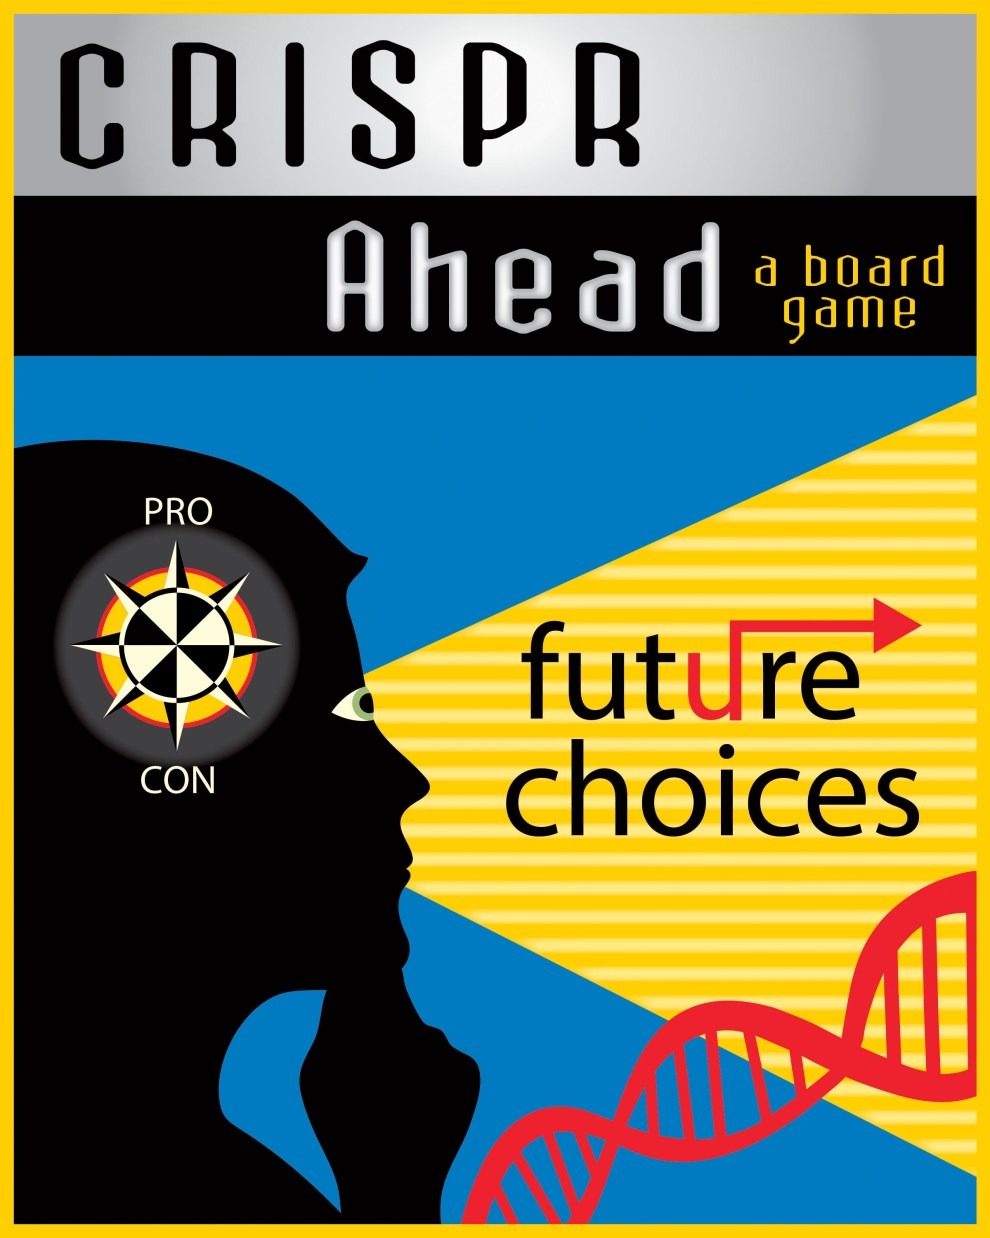 CRISPR Ahead Future Choices